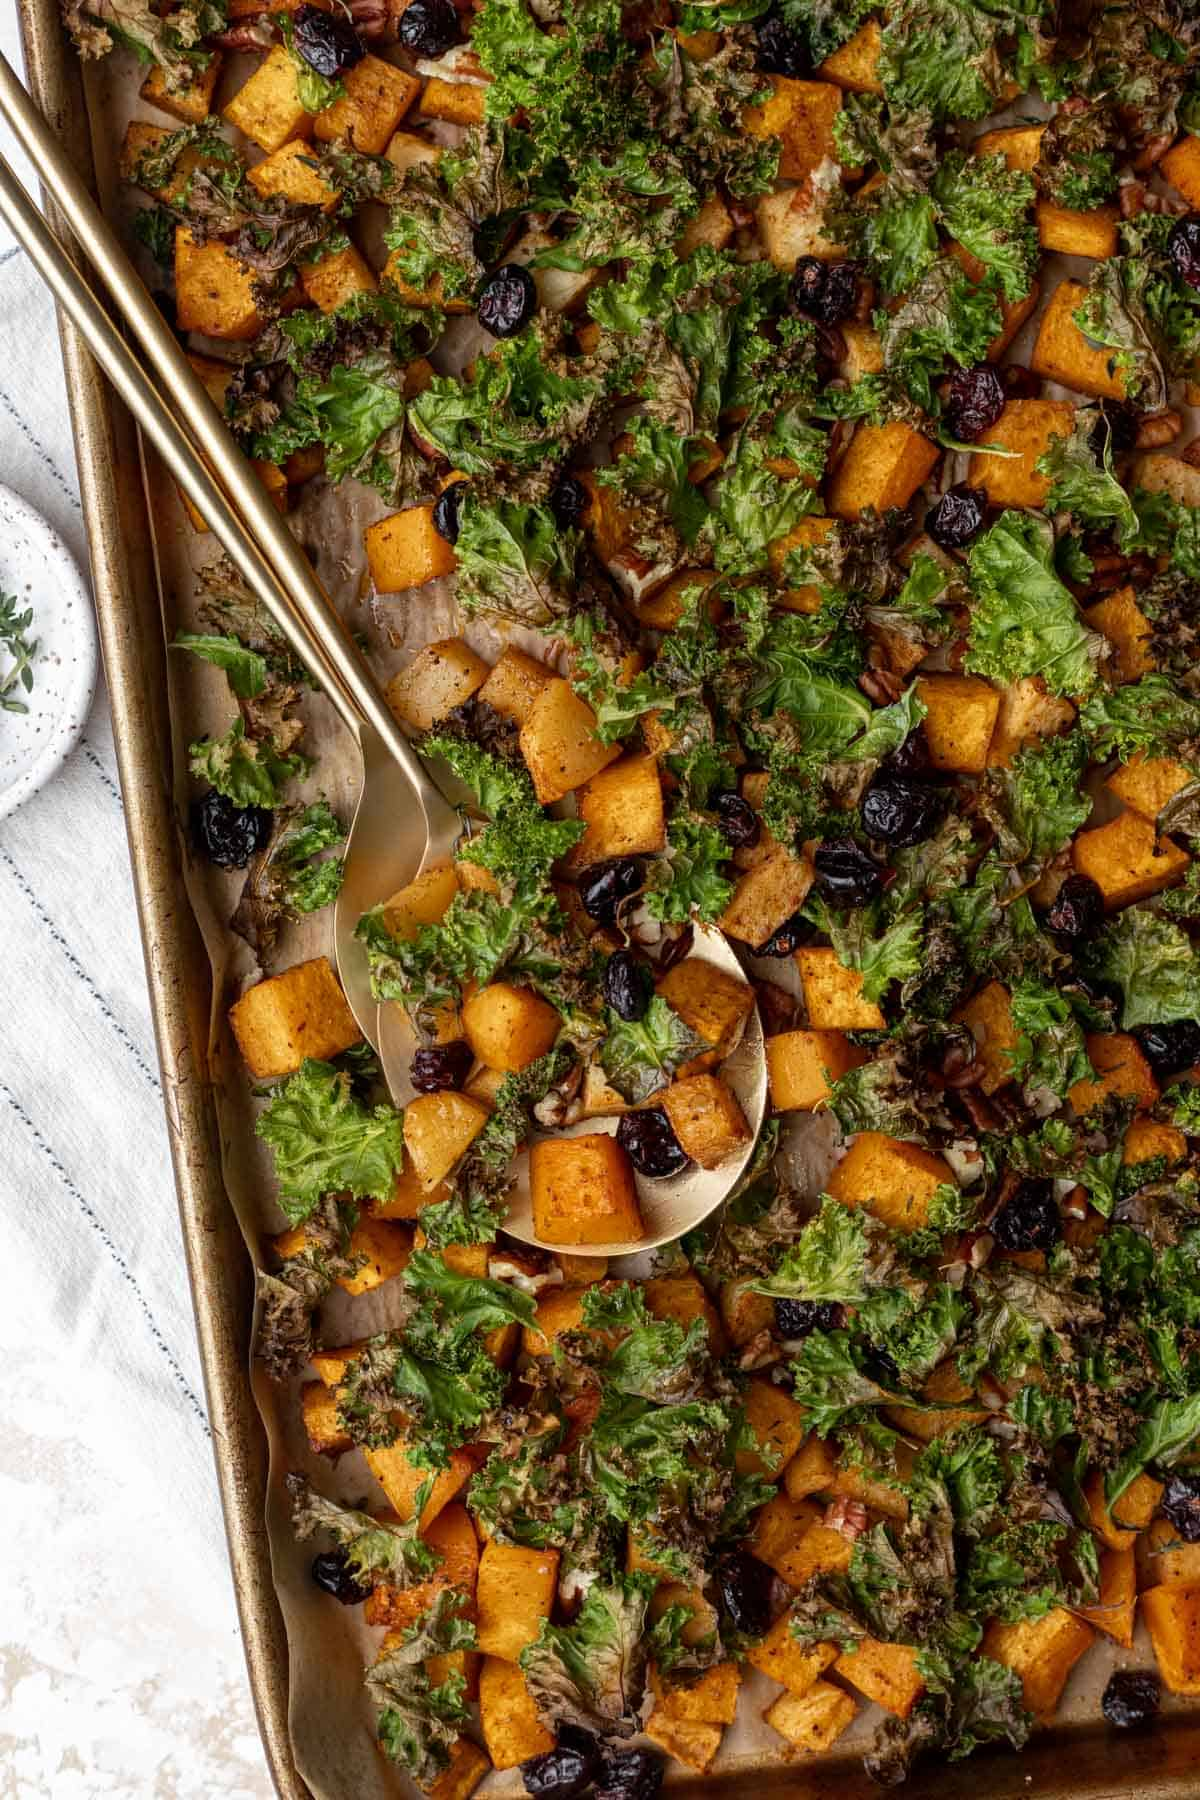 Roasted maple cinnamon butternut squash, crispy kale, baked apples, and dried cranberries on a sheet pan with two serving spoons for scooping.